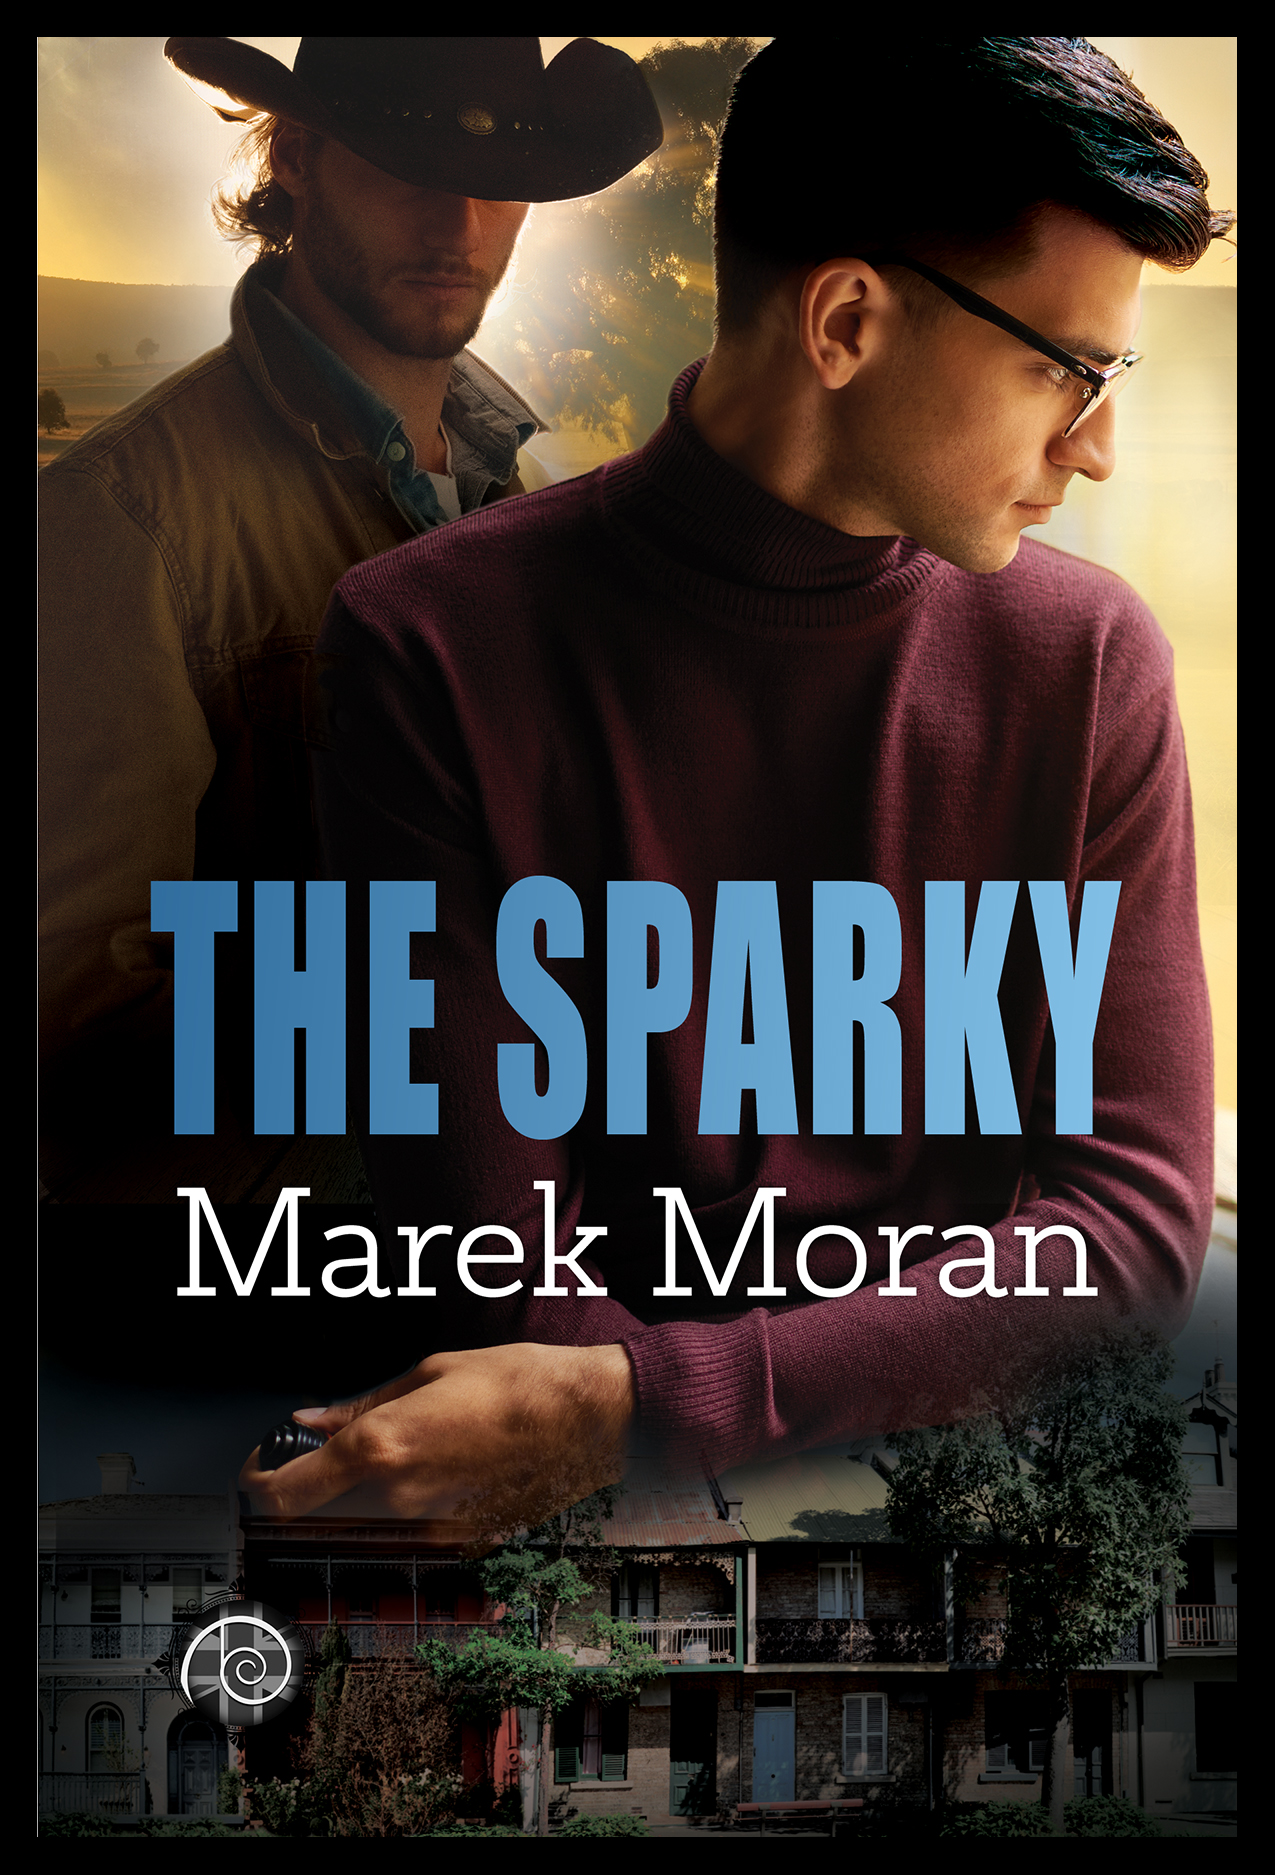 The Sparky by Marek Moran